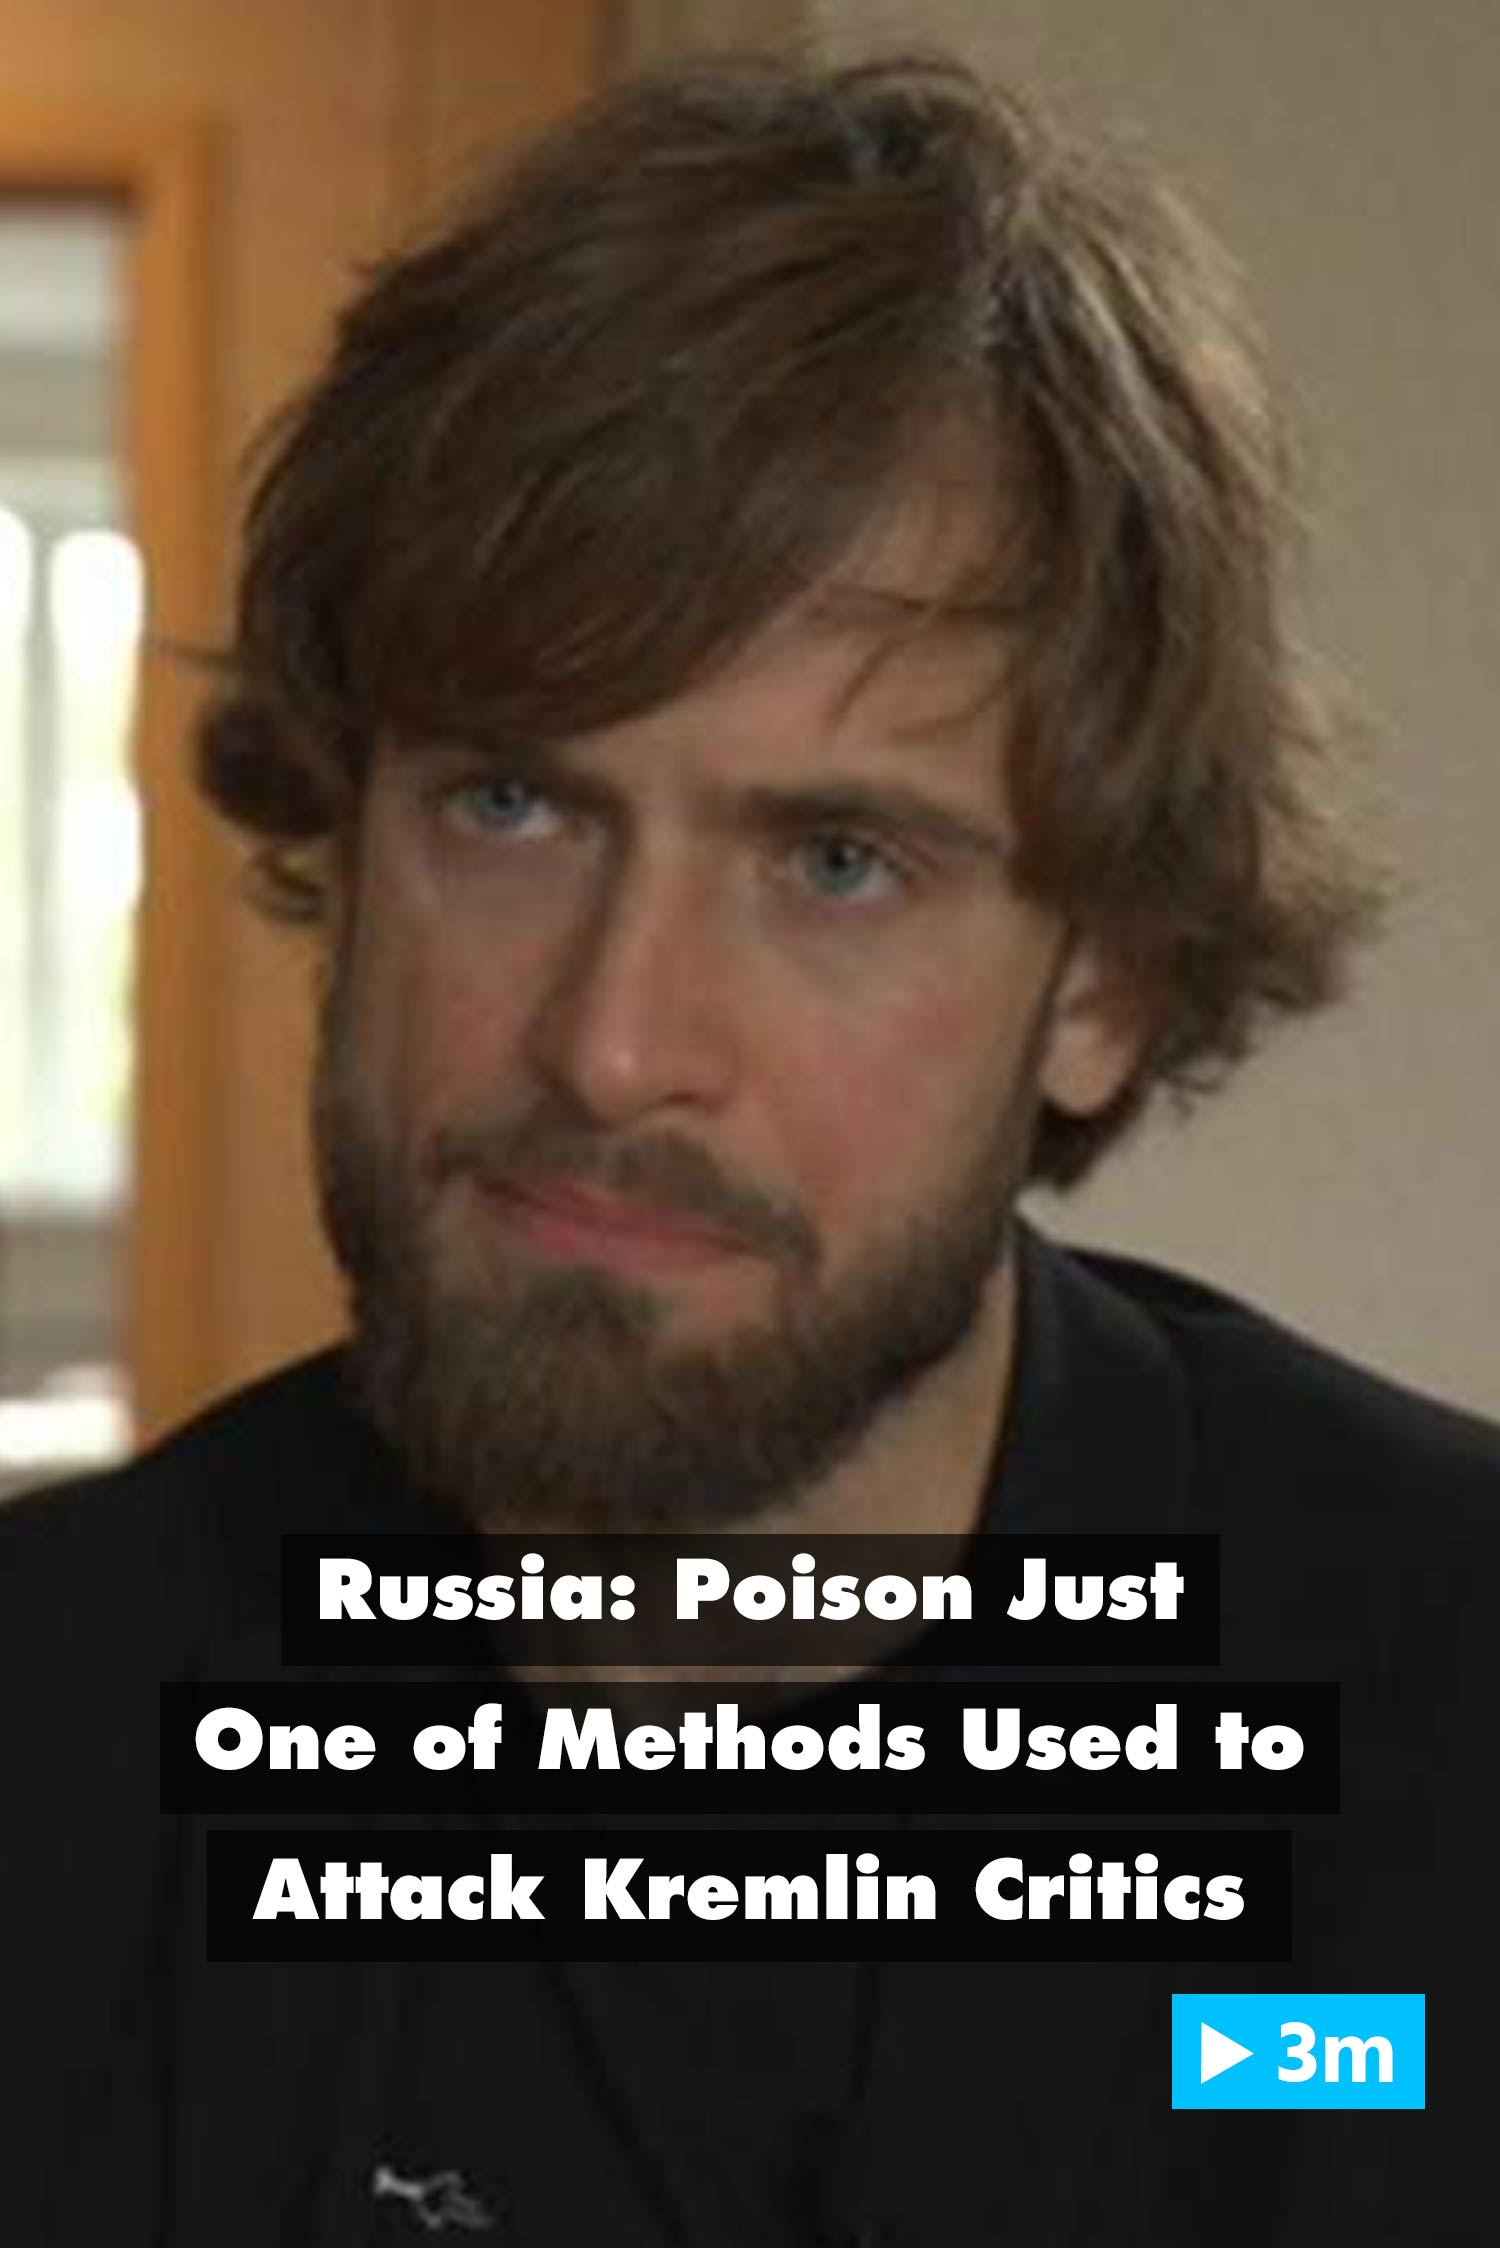 Editor's Choice: Russia: Poison just one of methods used to attack Kremlin critics